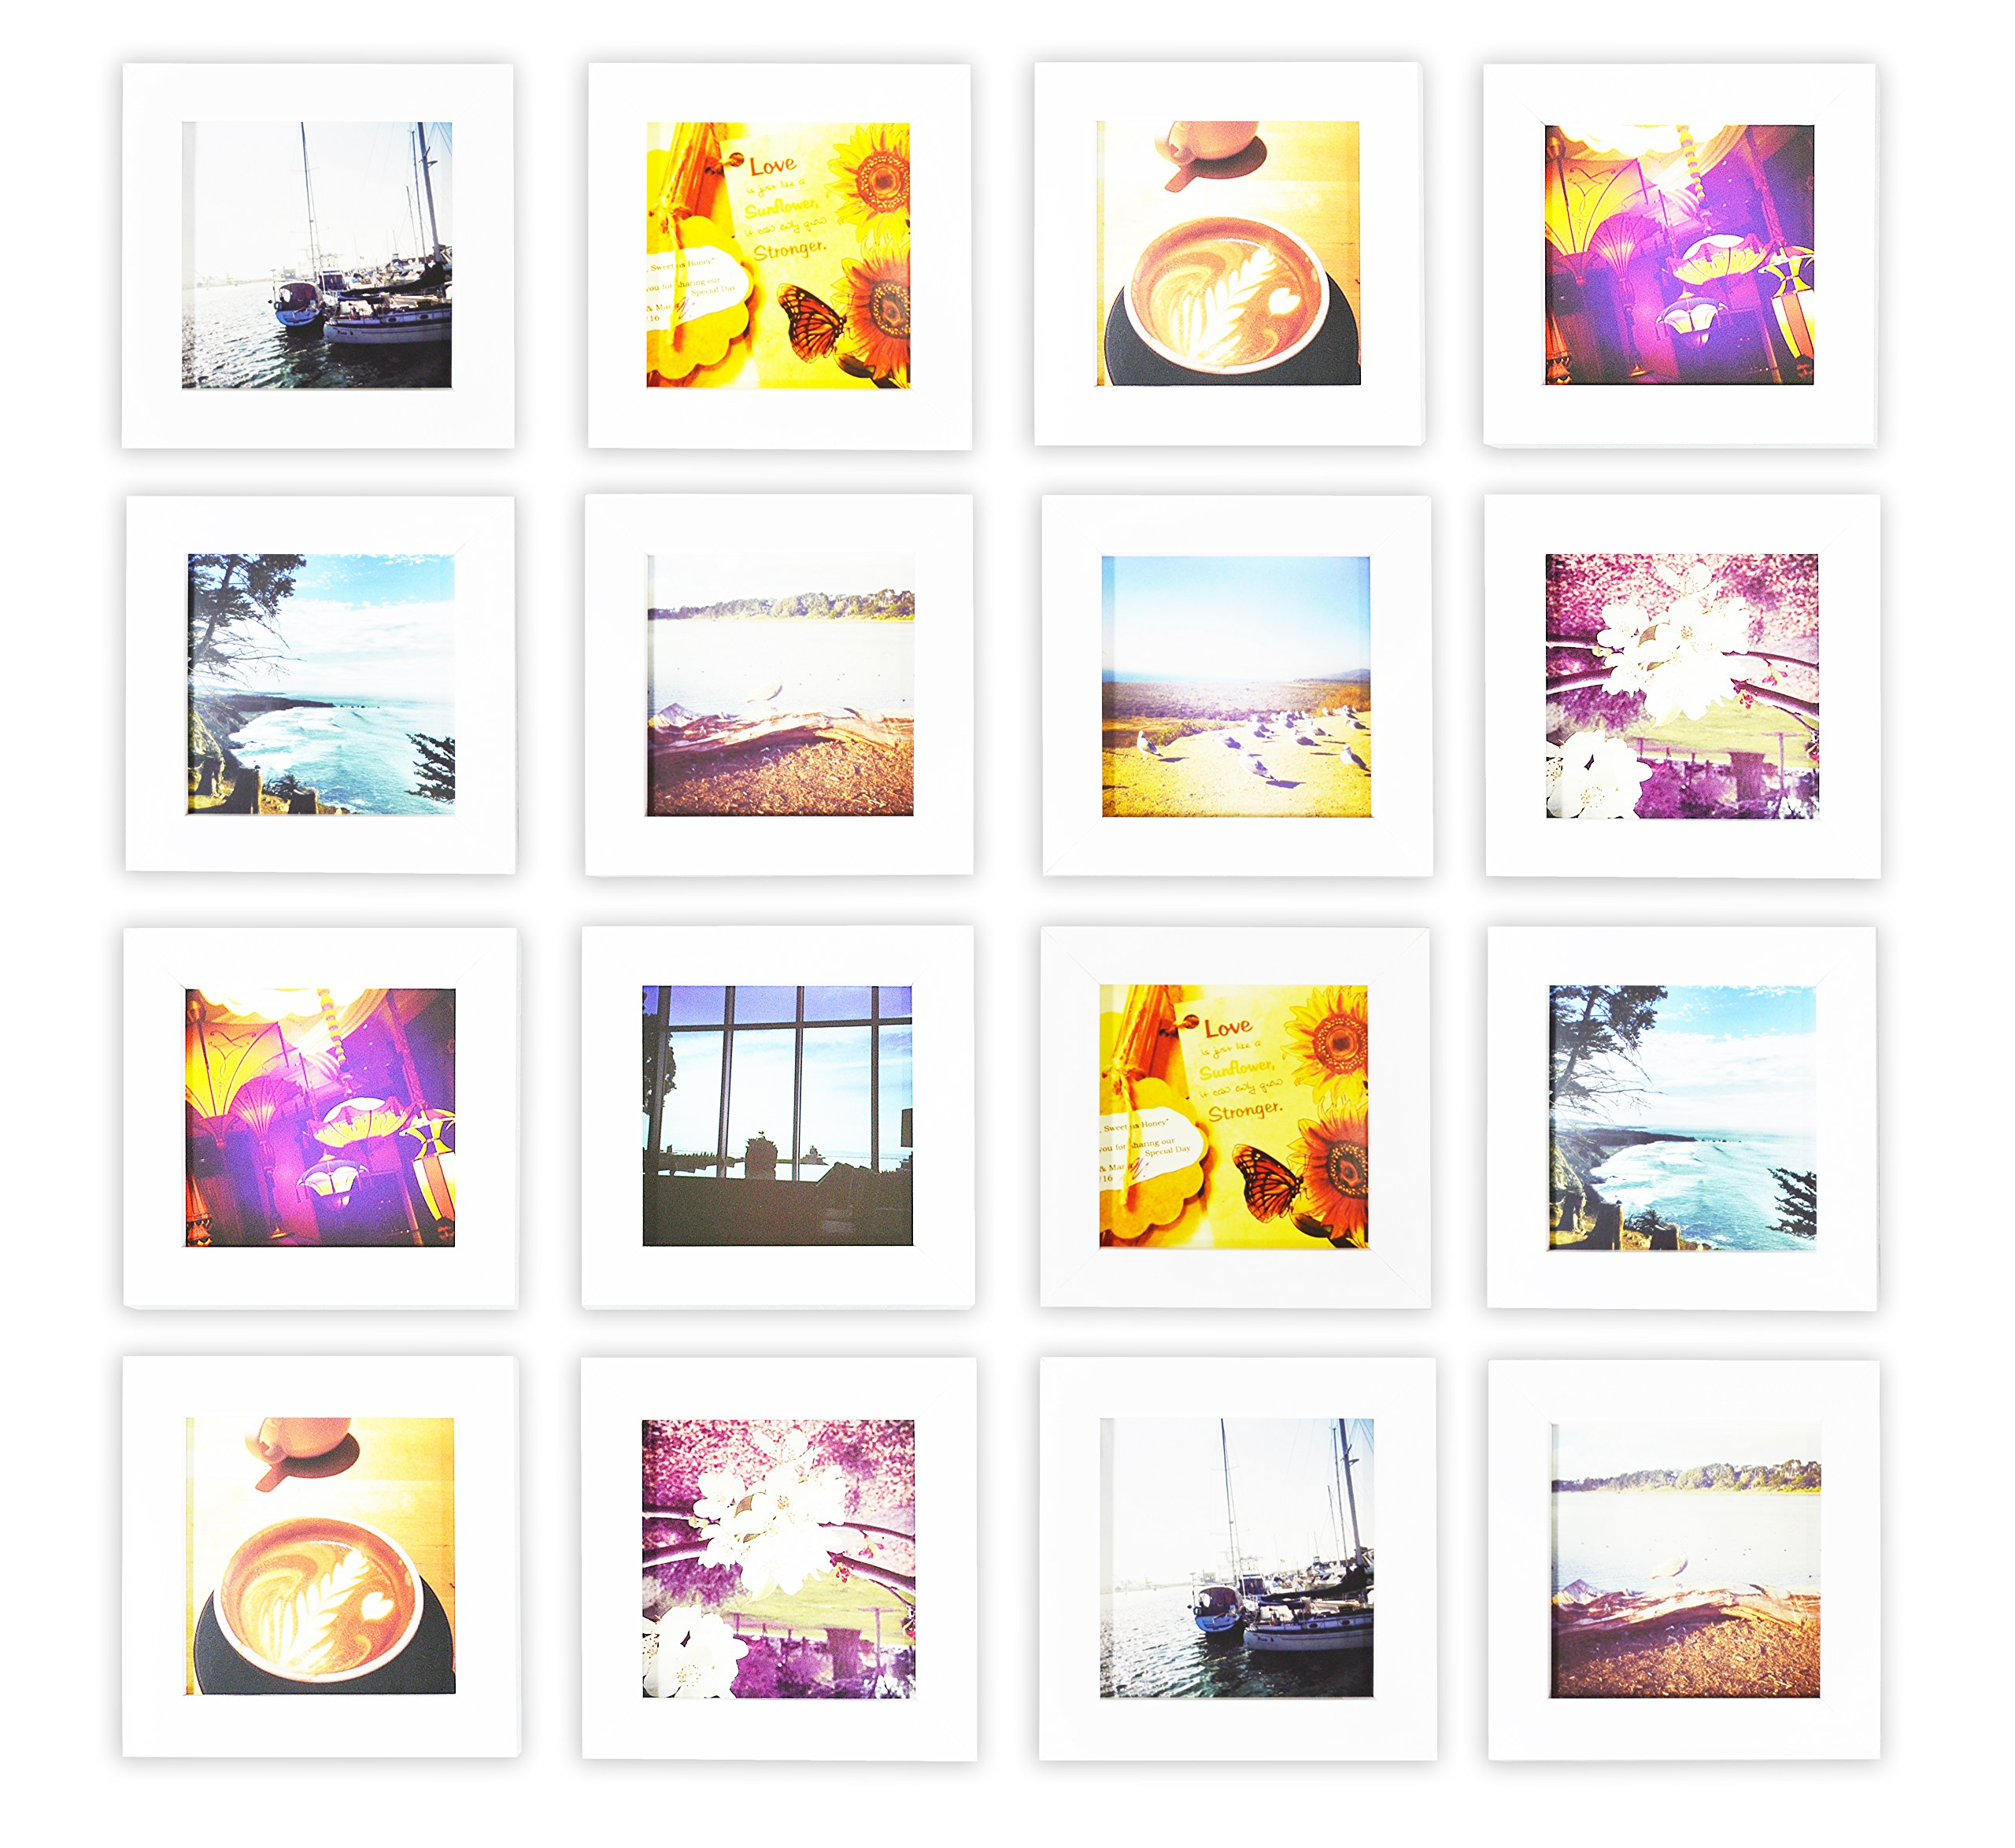 Golden State Art, Smartphone Instagram Frame Collection, Set of 16, 4x4-inch Square Photo Wood Frames, White by Golden State Art